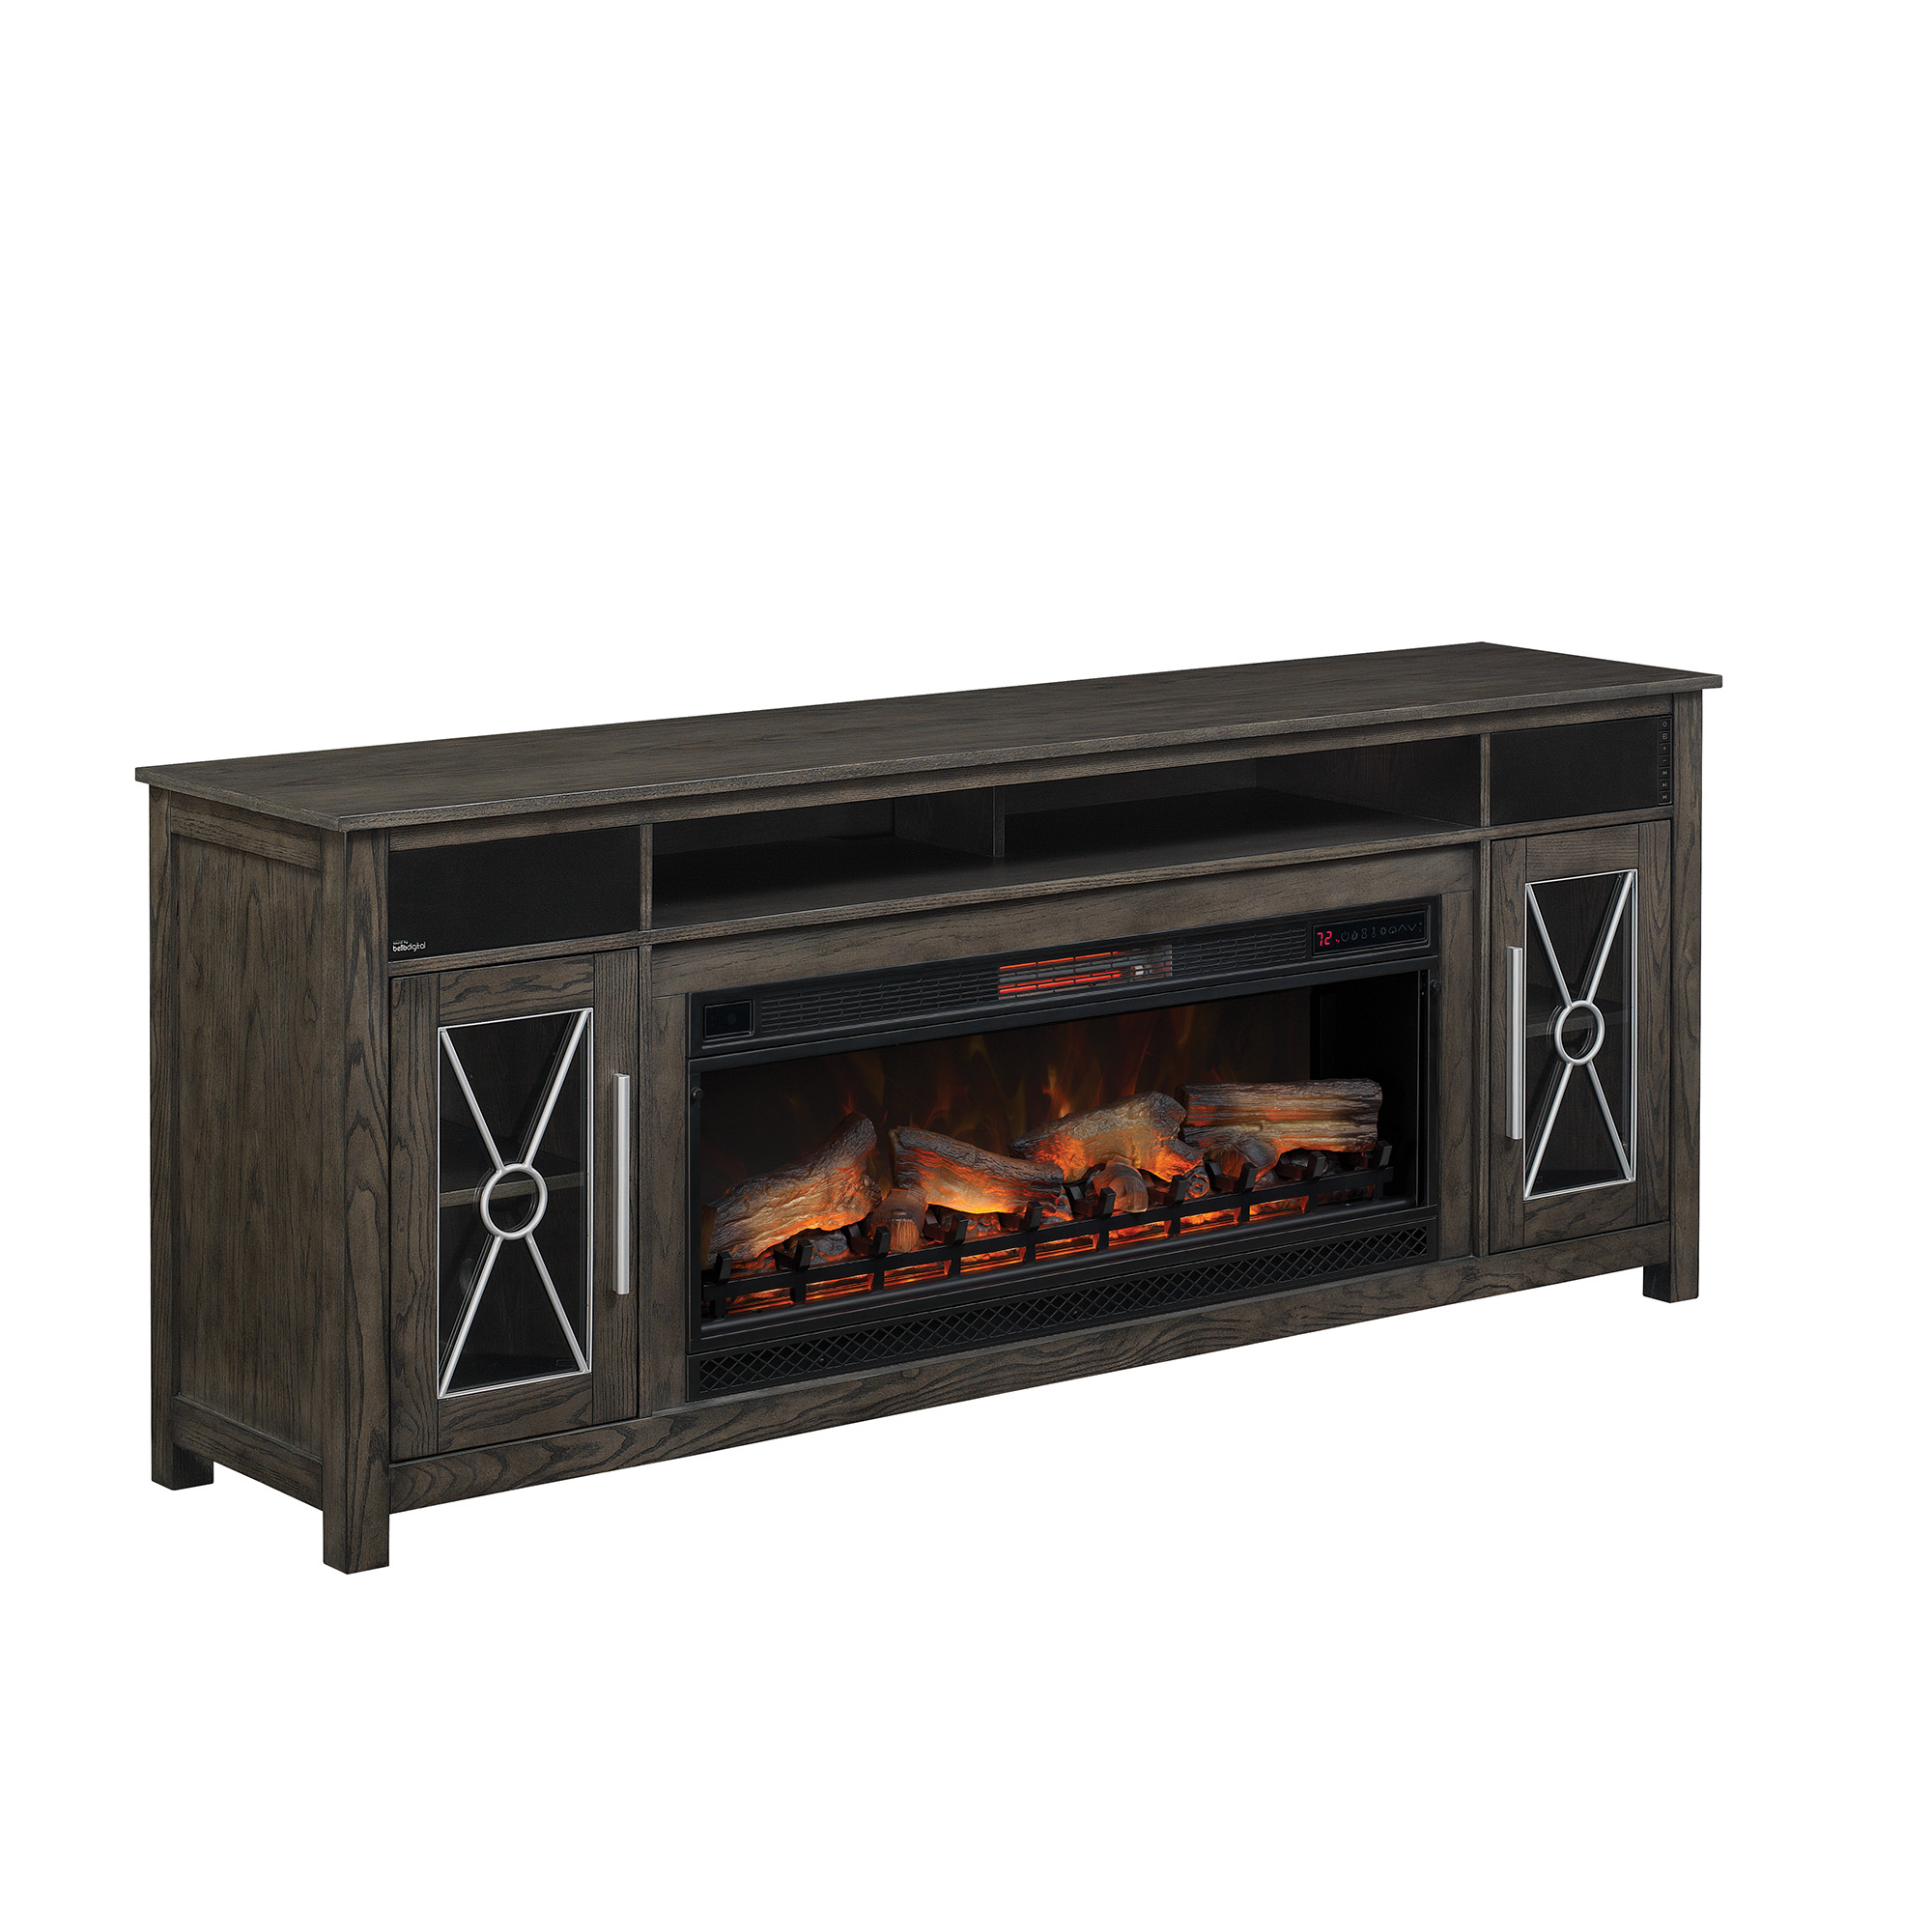 infrared improvement media boxwood pdx alcott hill electric home fireplace digital wayfair garmon corner reviews